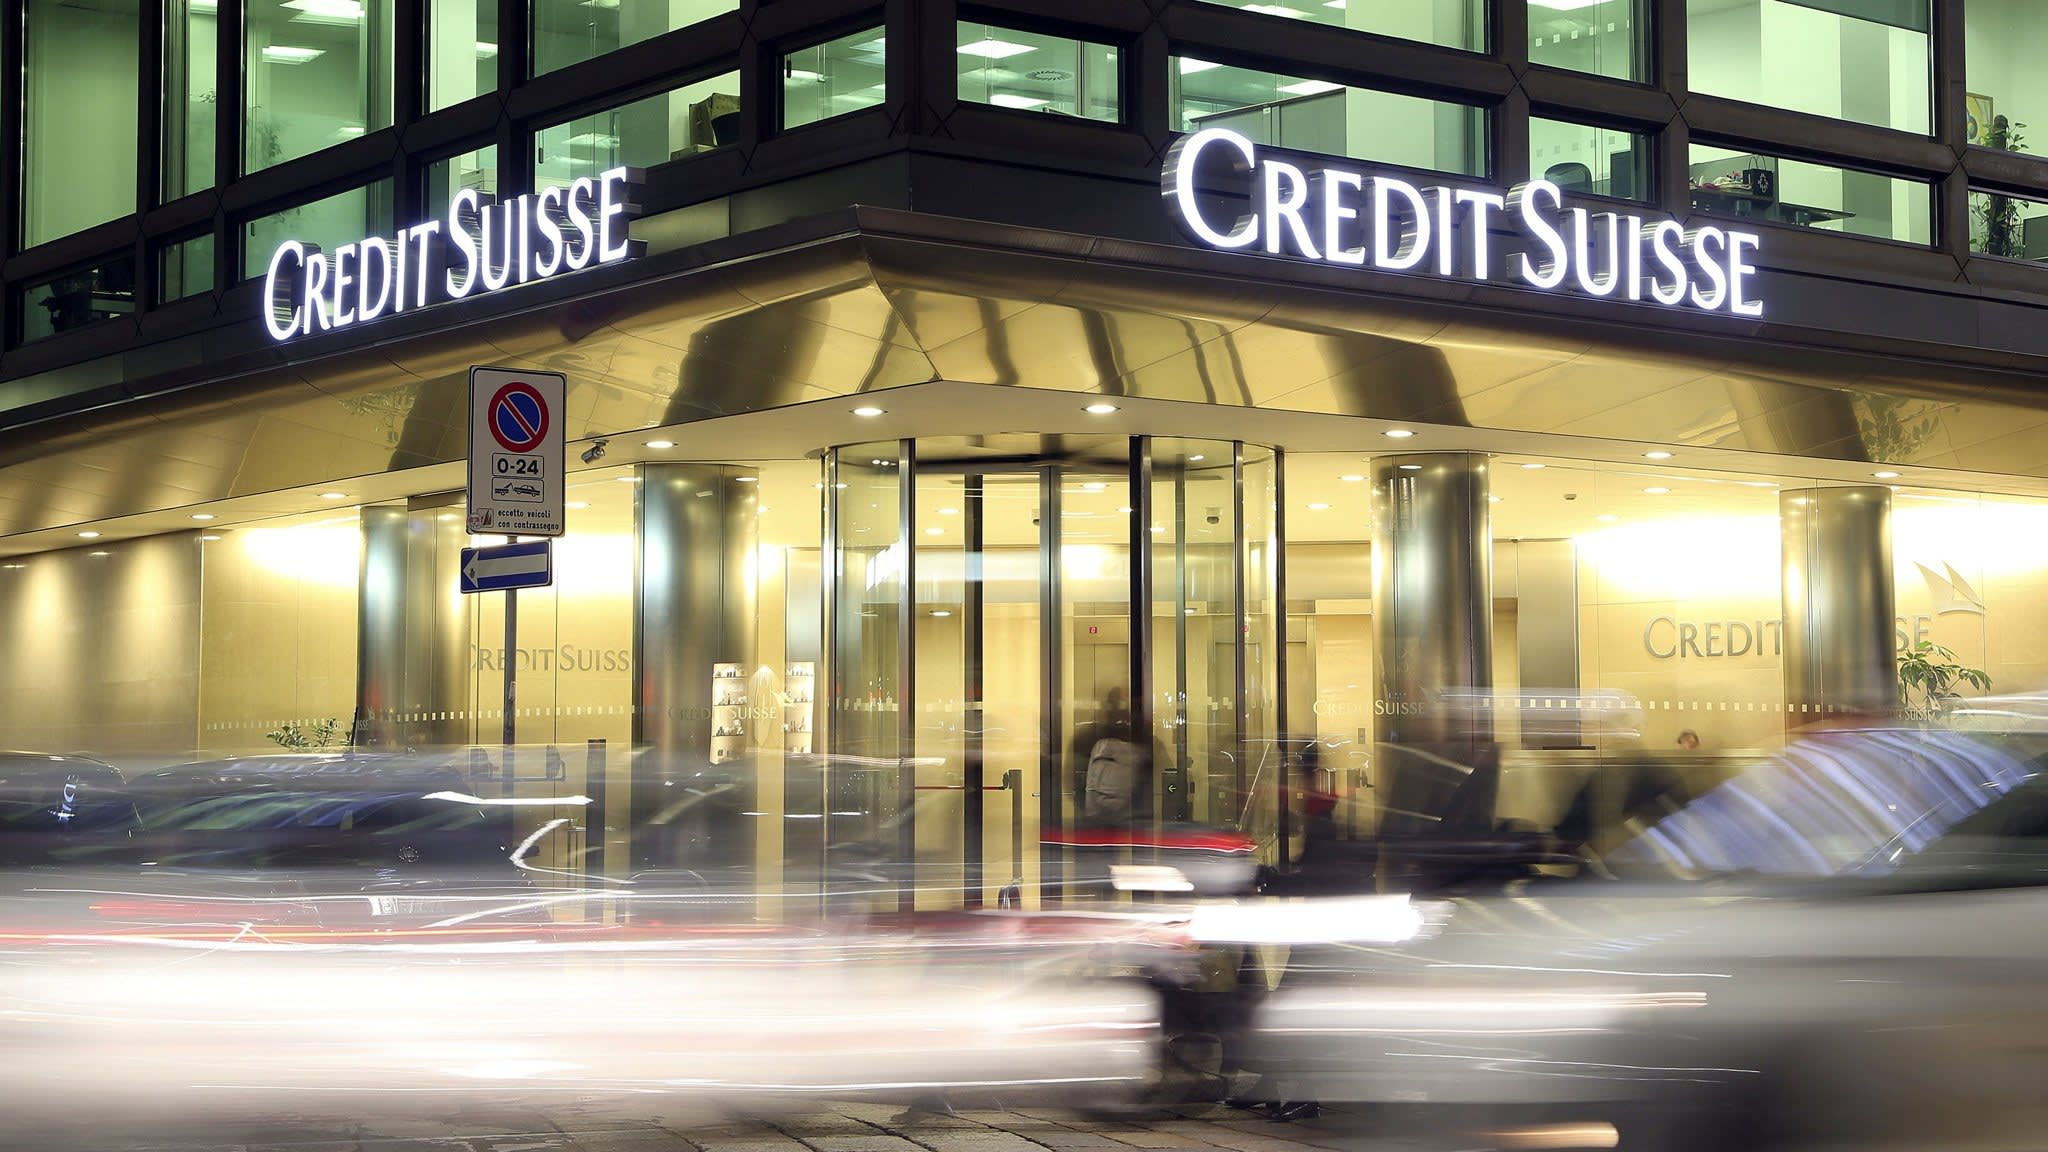 Credit Suisse acts to shore up confidence in loan market